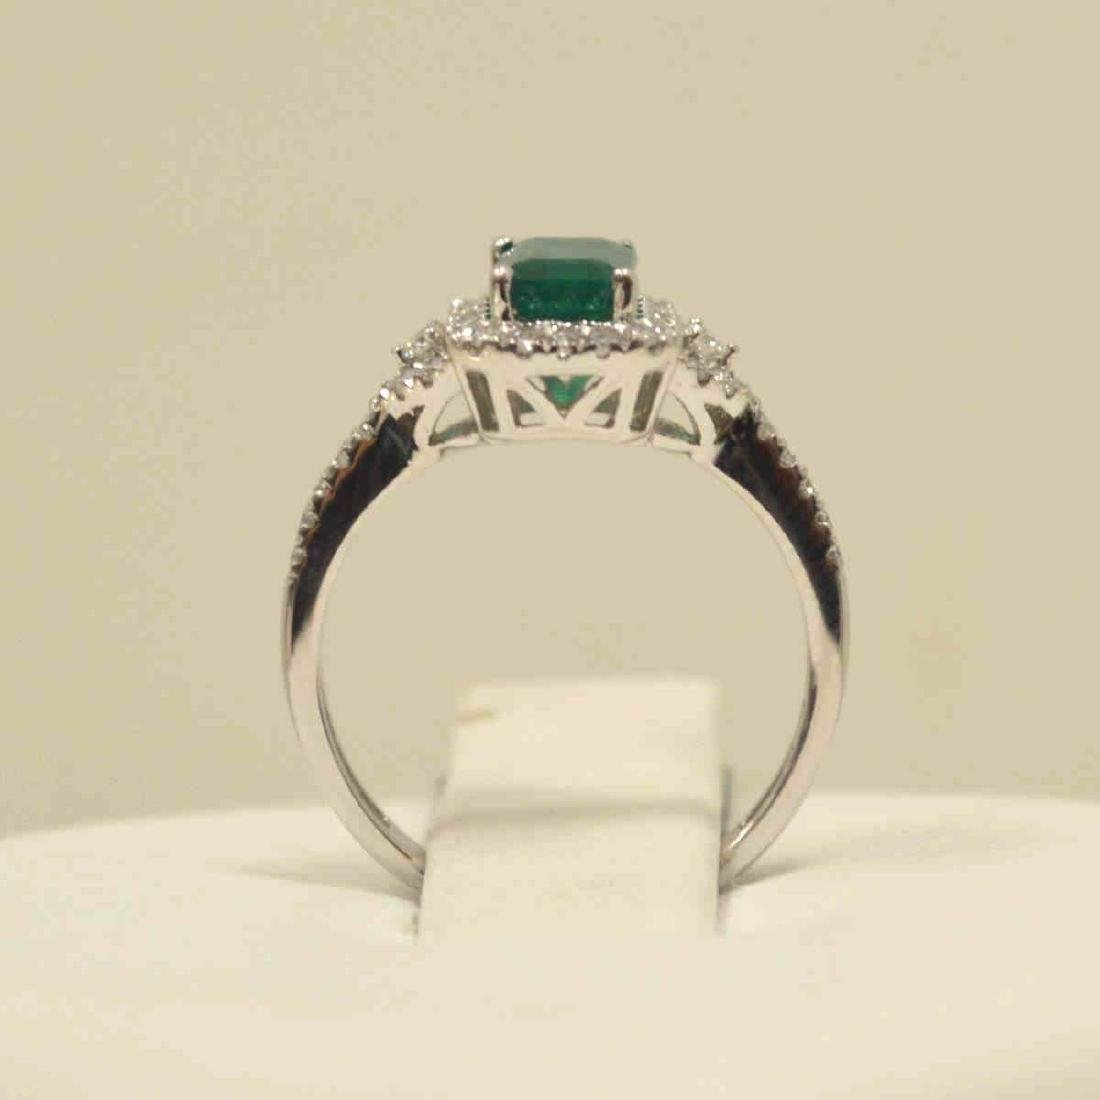 14kt white gold emerald and diamond ring - 3